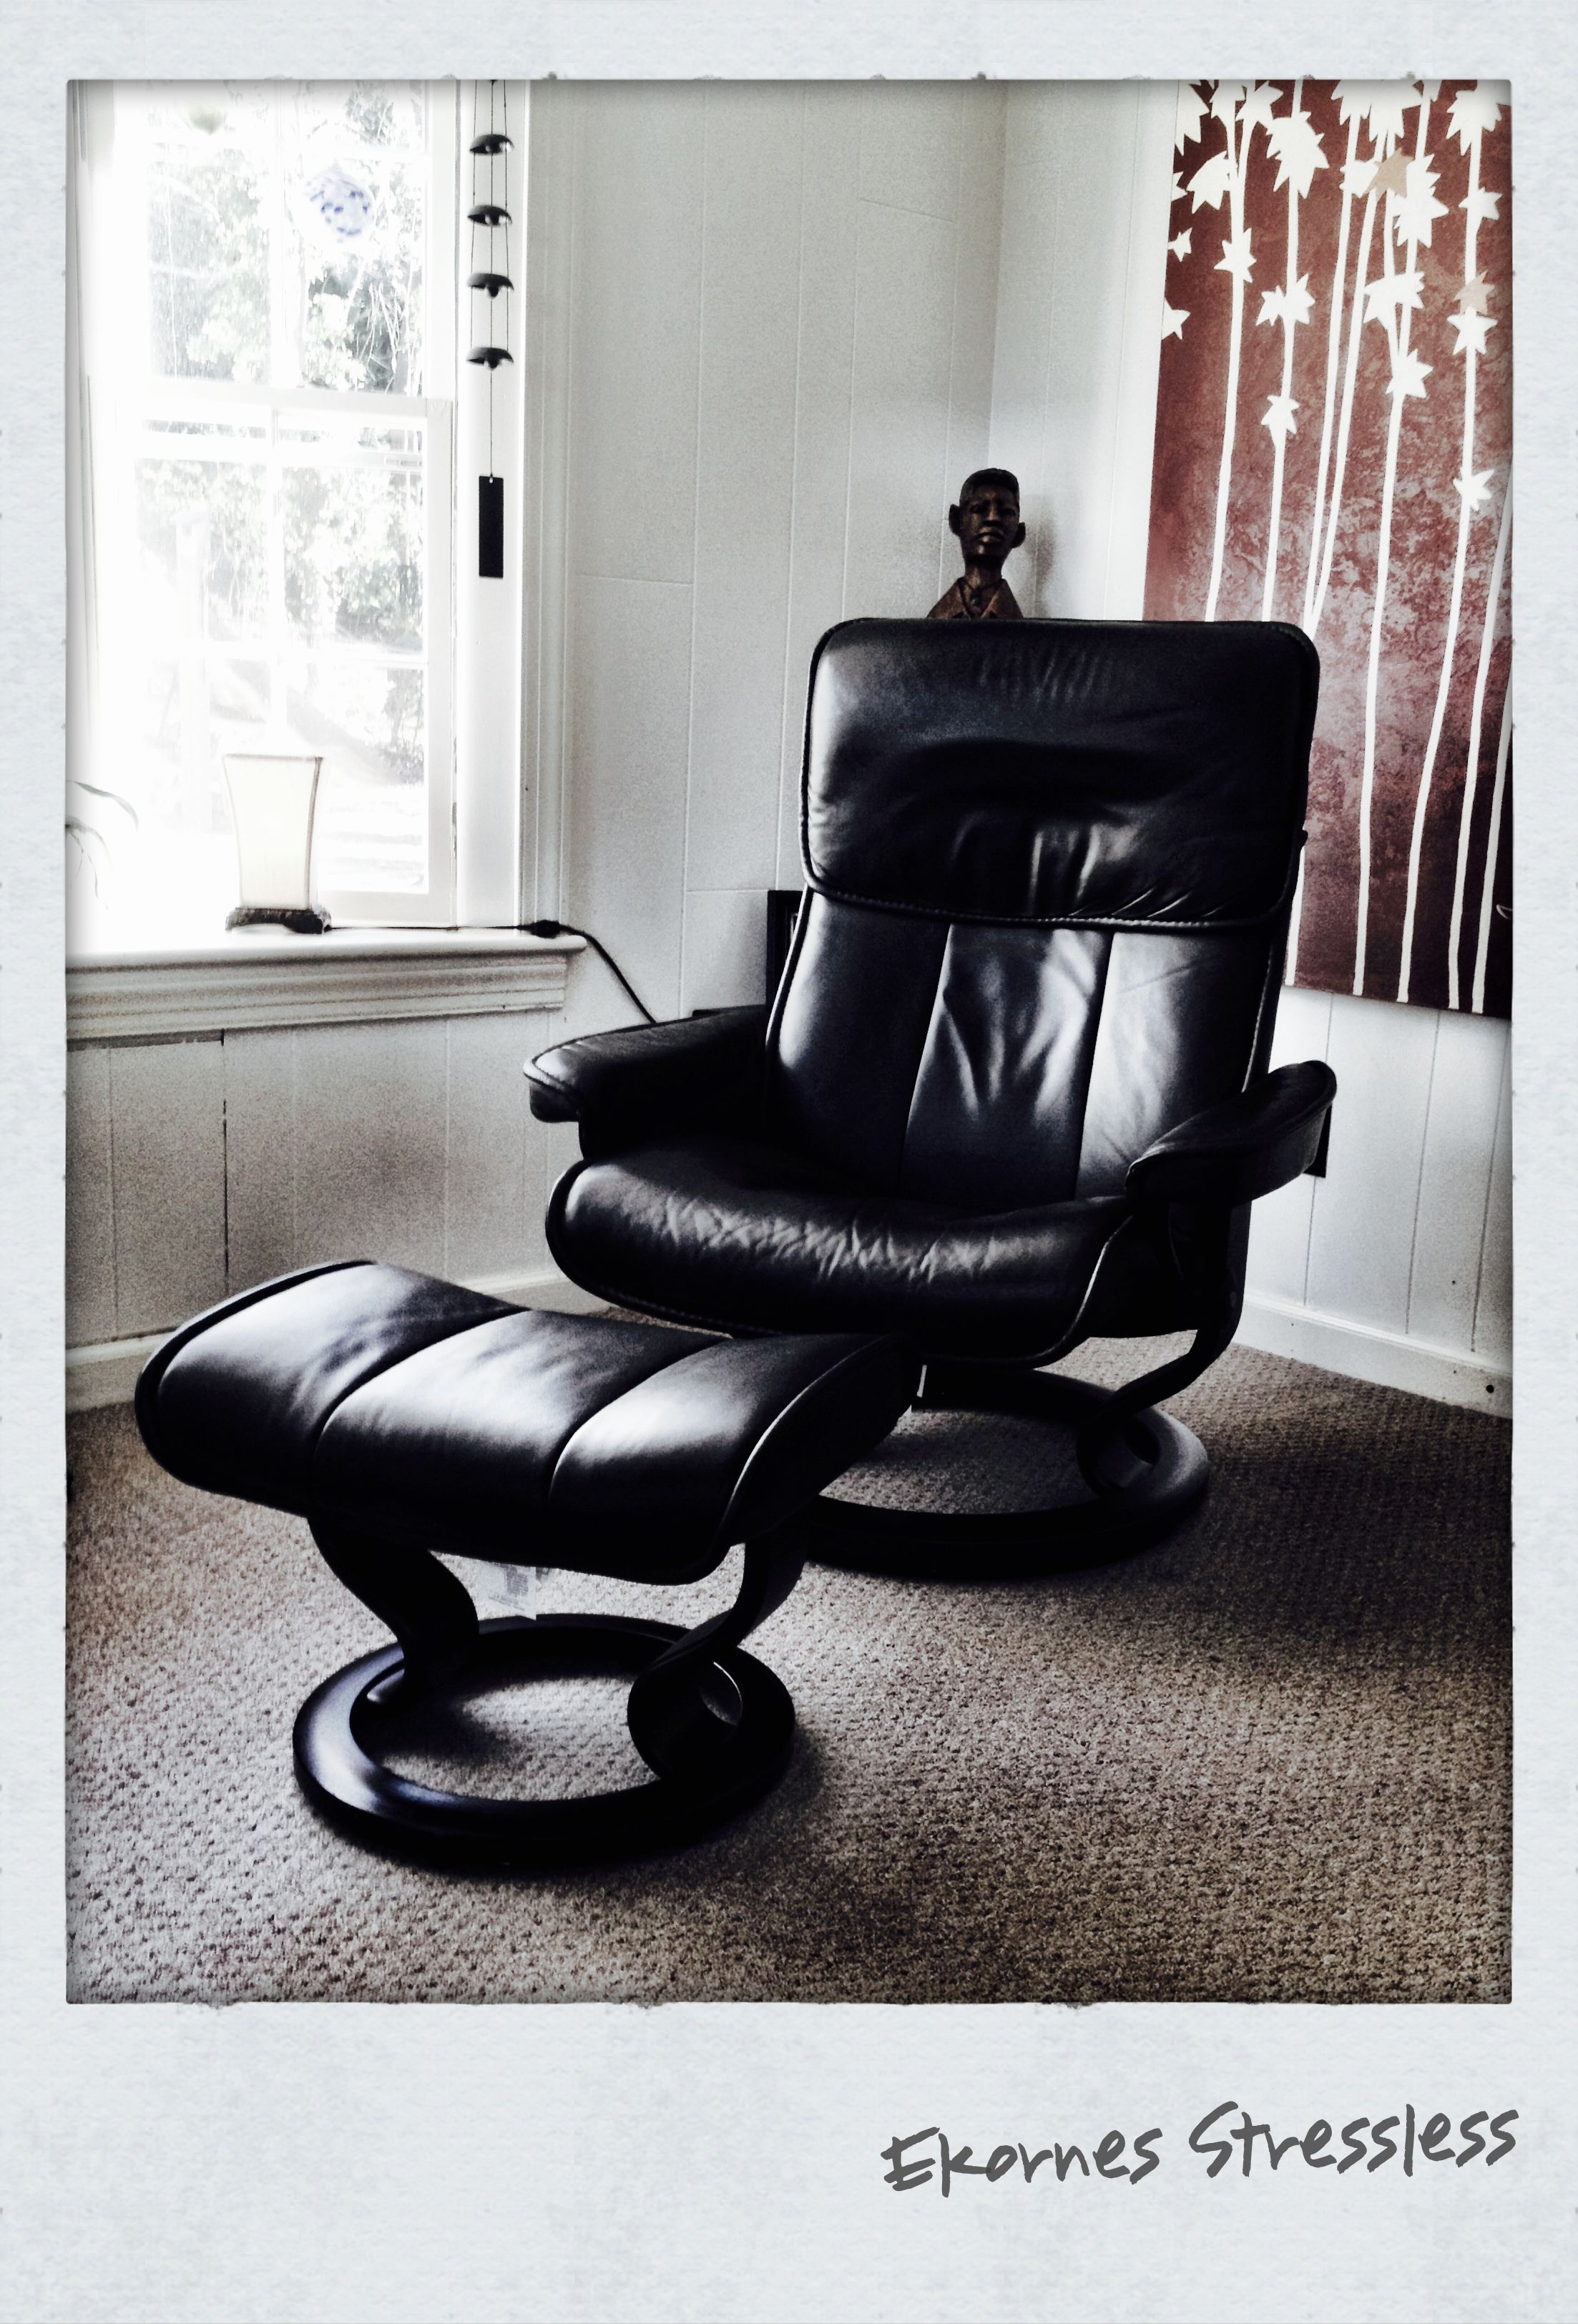 Stressless Ekornes Sessel Ekornes Stressless Admiral Leather Recliner And Ottoman Mid Mod